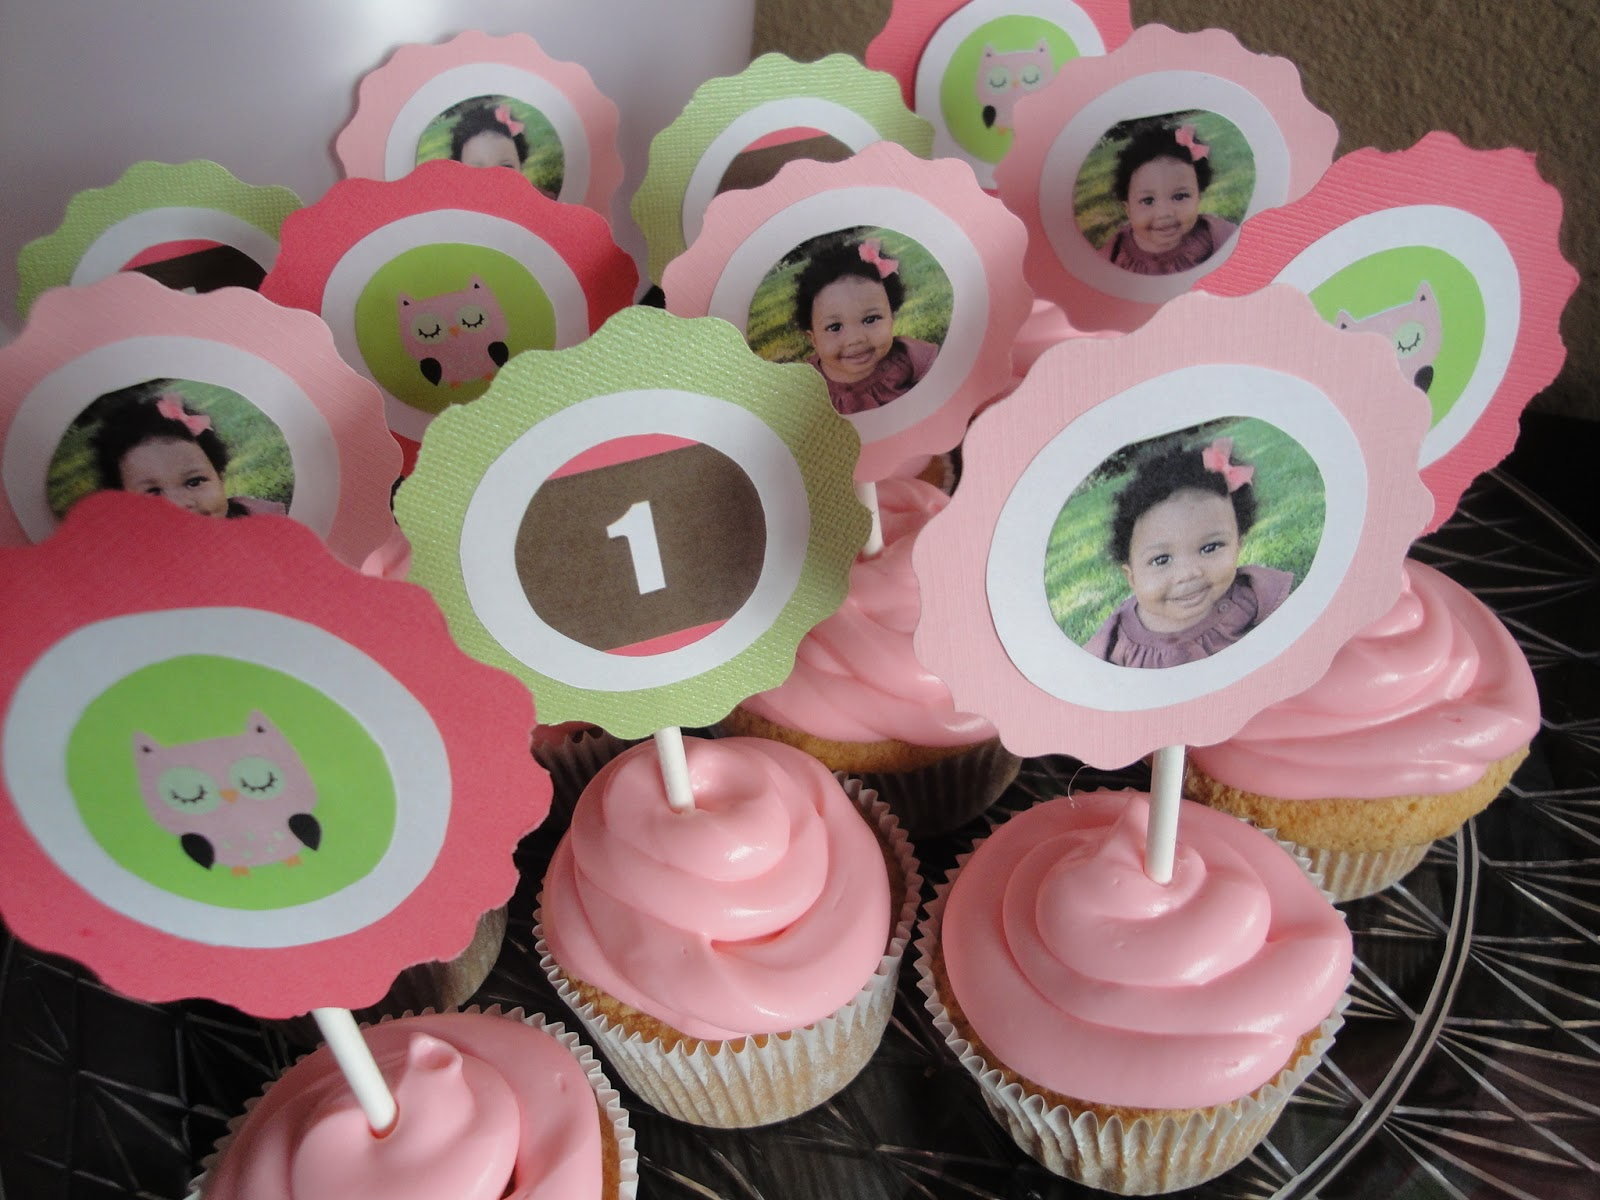 10 Cupcakes For Little Girl 1st Birthday Party Photo Girl Cupcake